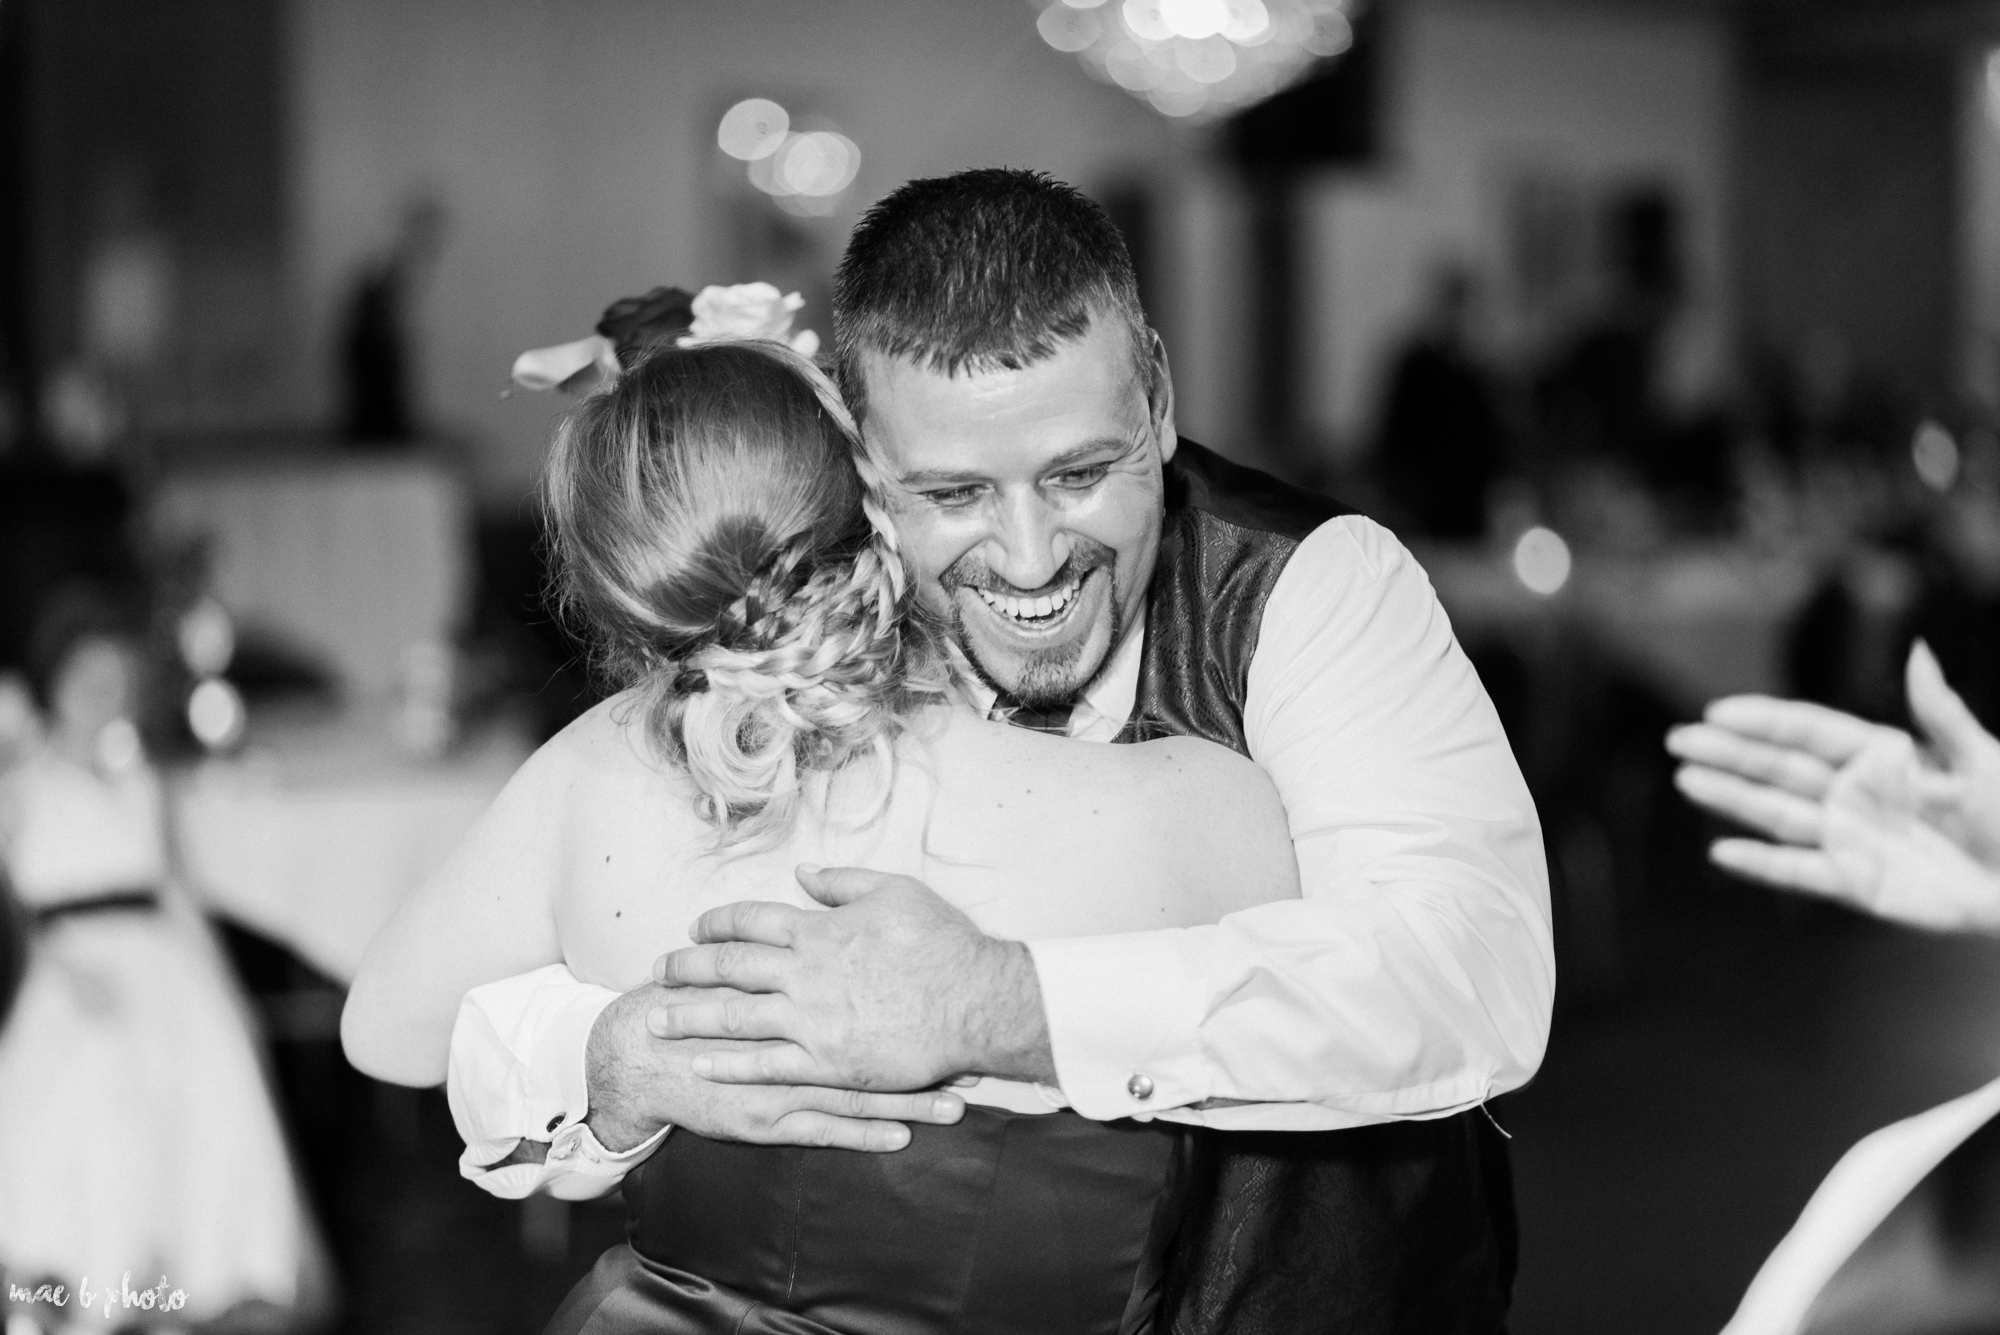 tracey and aaron's personal fall wedding at tiffany's banquet center in brookfield ohio-116.jpg